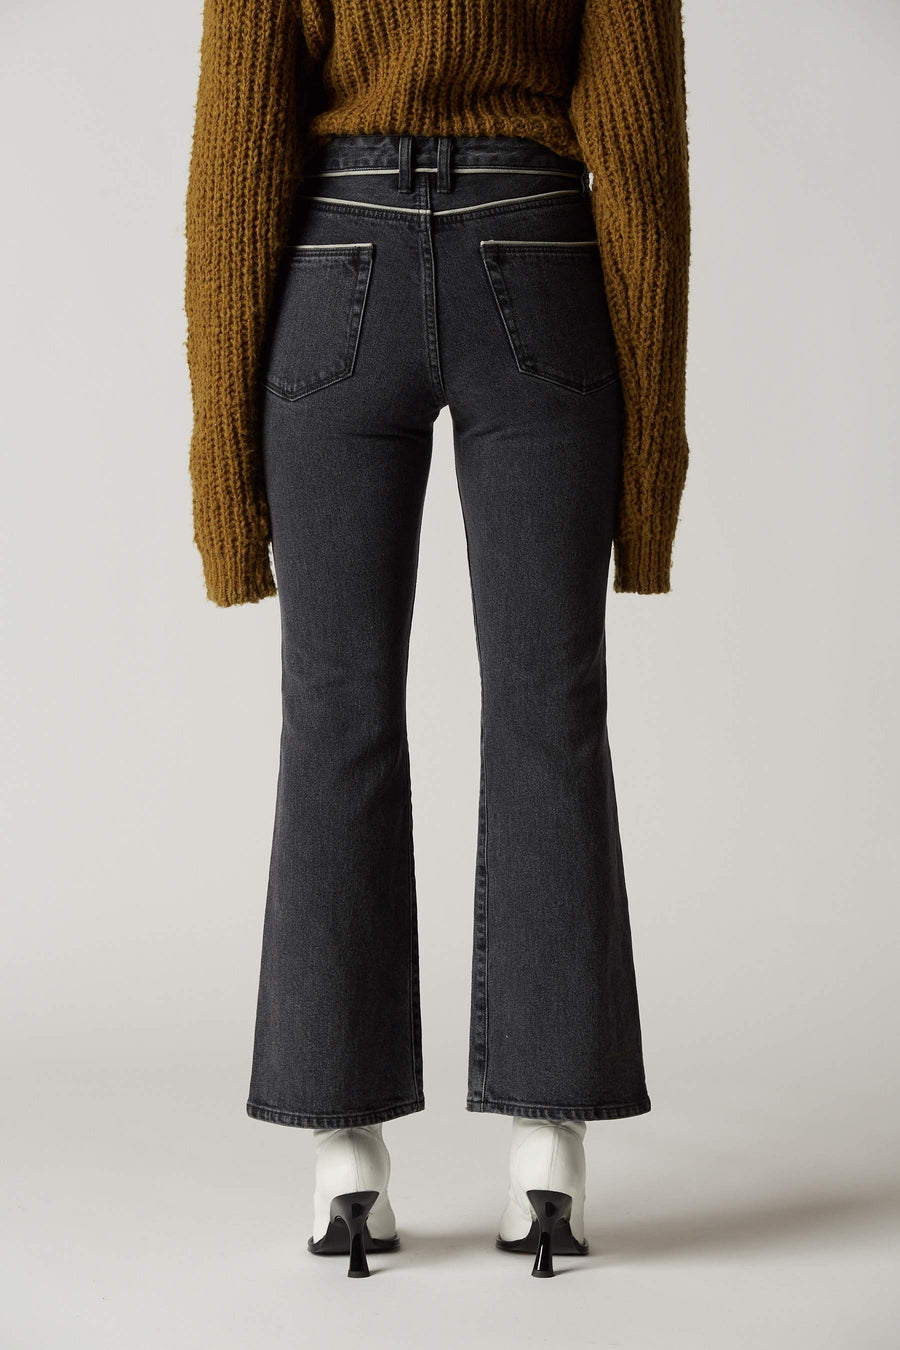 W011 Jean in Mid Black Wash Piping